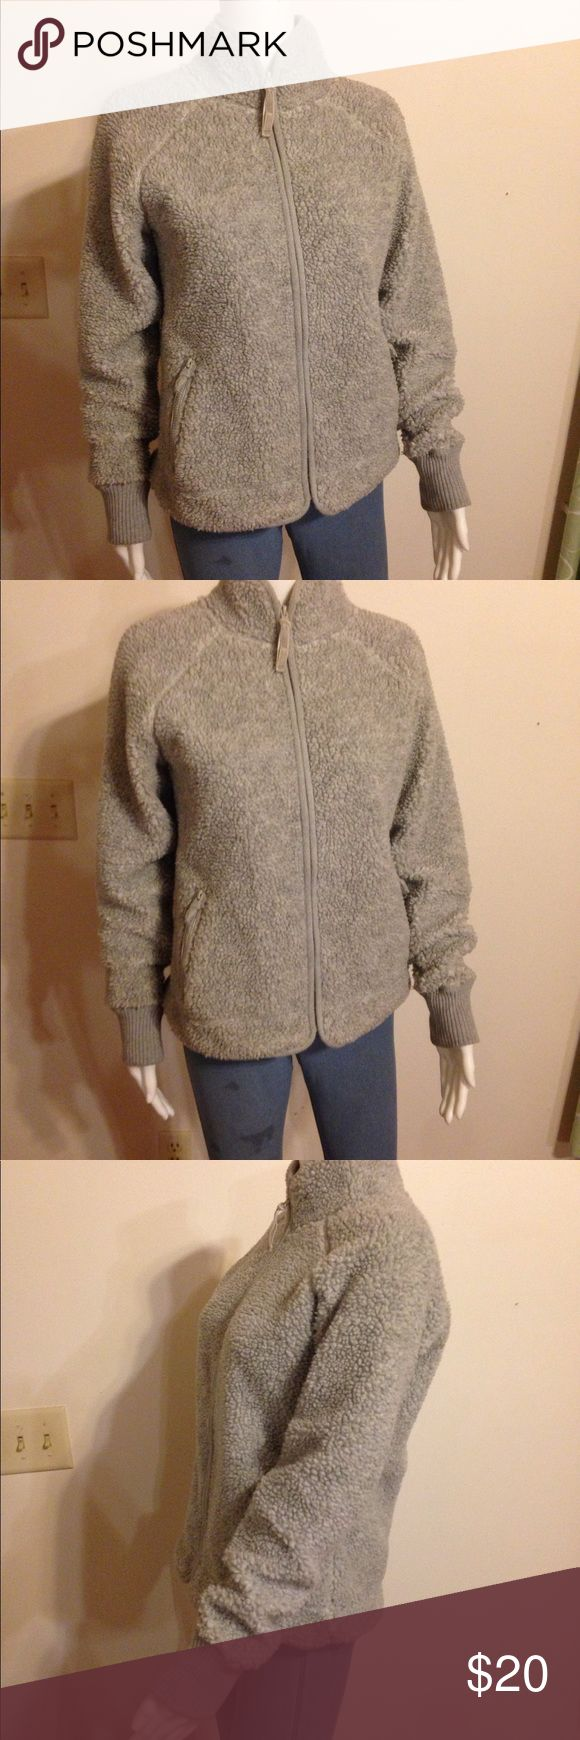 Old Navy Thick Fleece Full zip jacket Medium Old Navy thick fleece gray full zip jacket. Stain free. Like new. Jersey inside. Great for winter! Holidays, gift idea, keeping warm and cozy Old Navy Sweaters